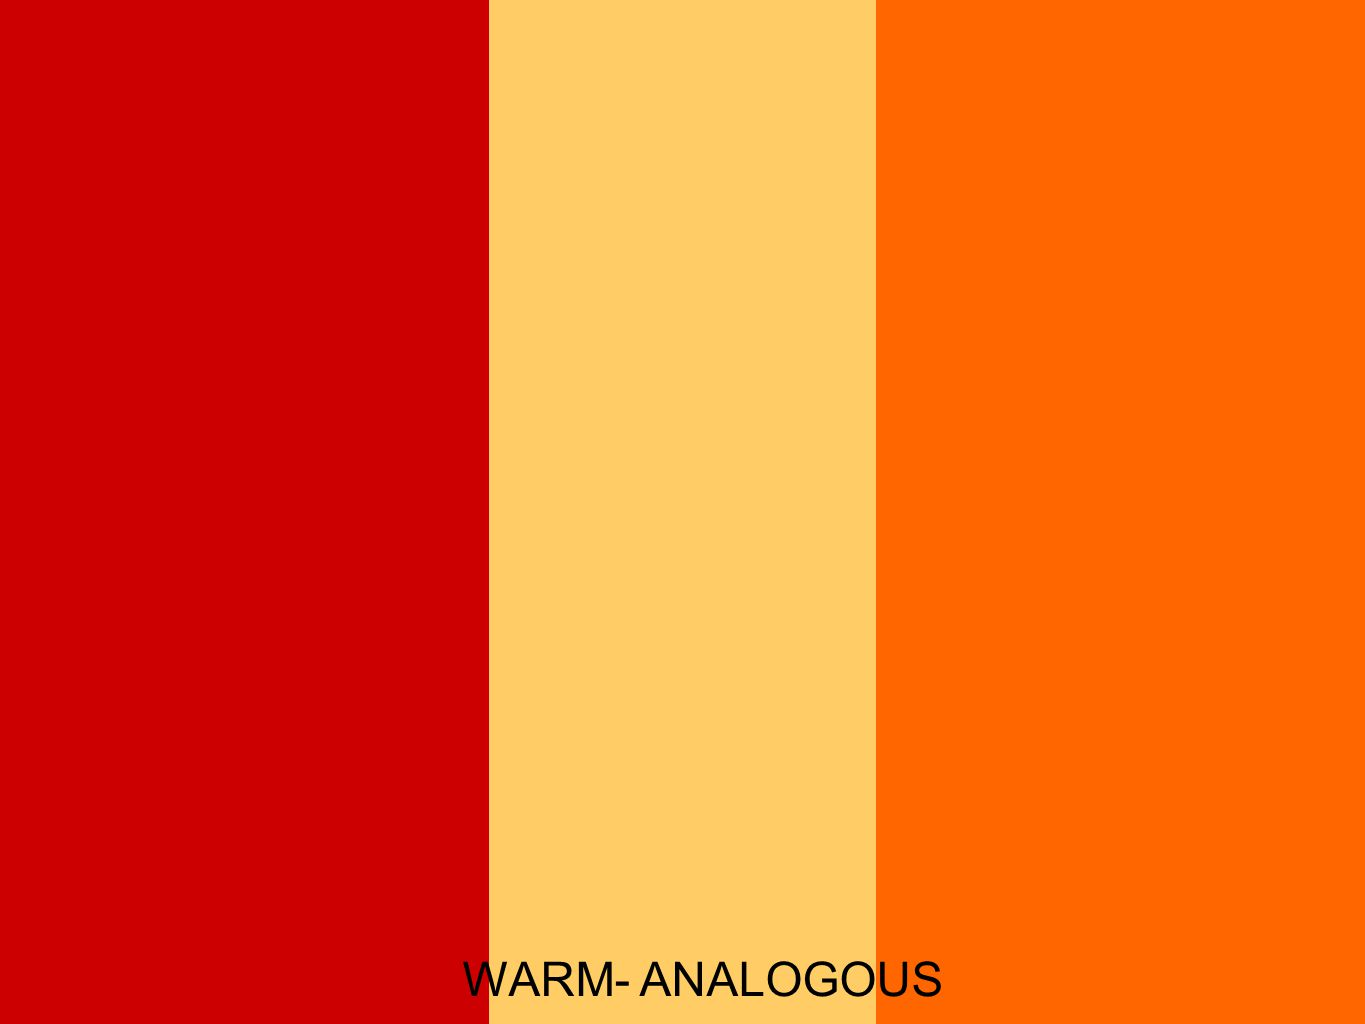 WARM- ANALOGOUS